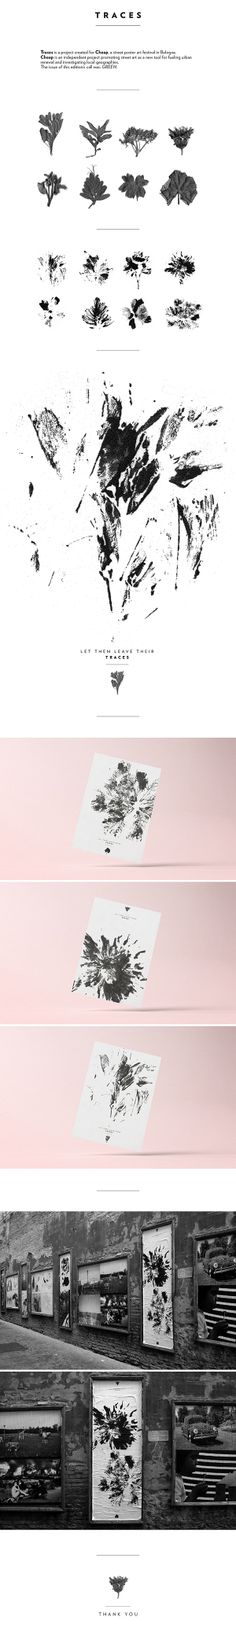 Traces on Behance